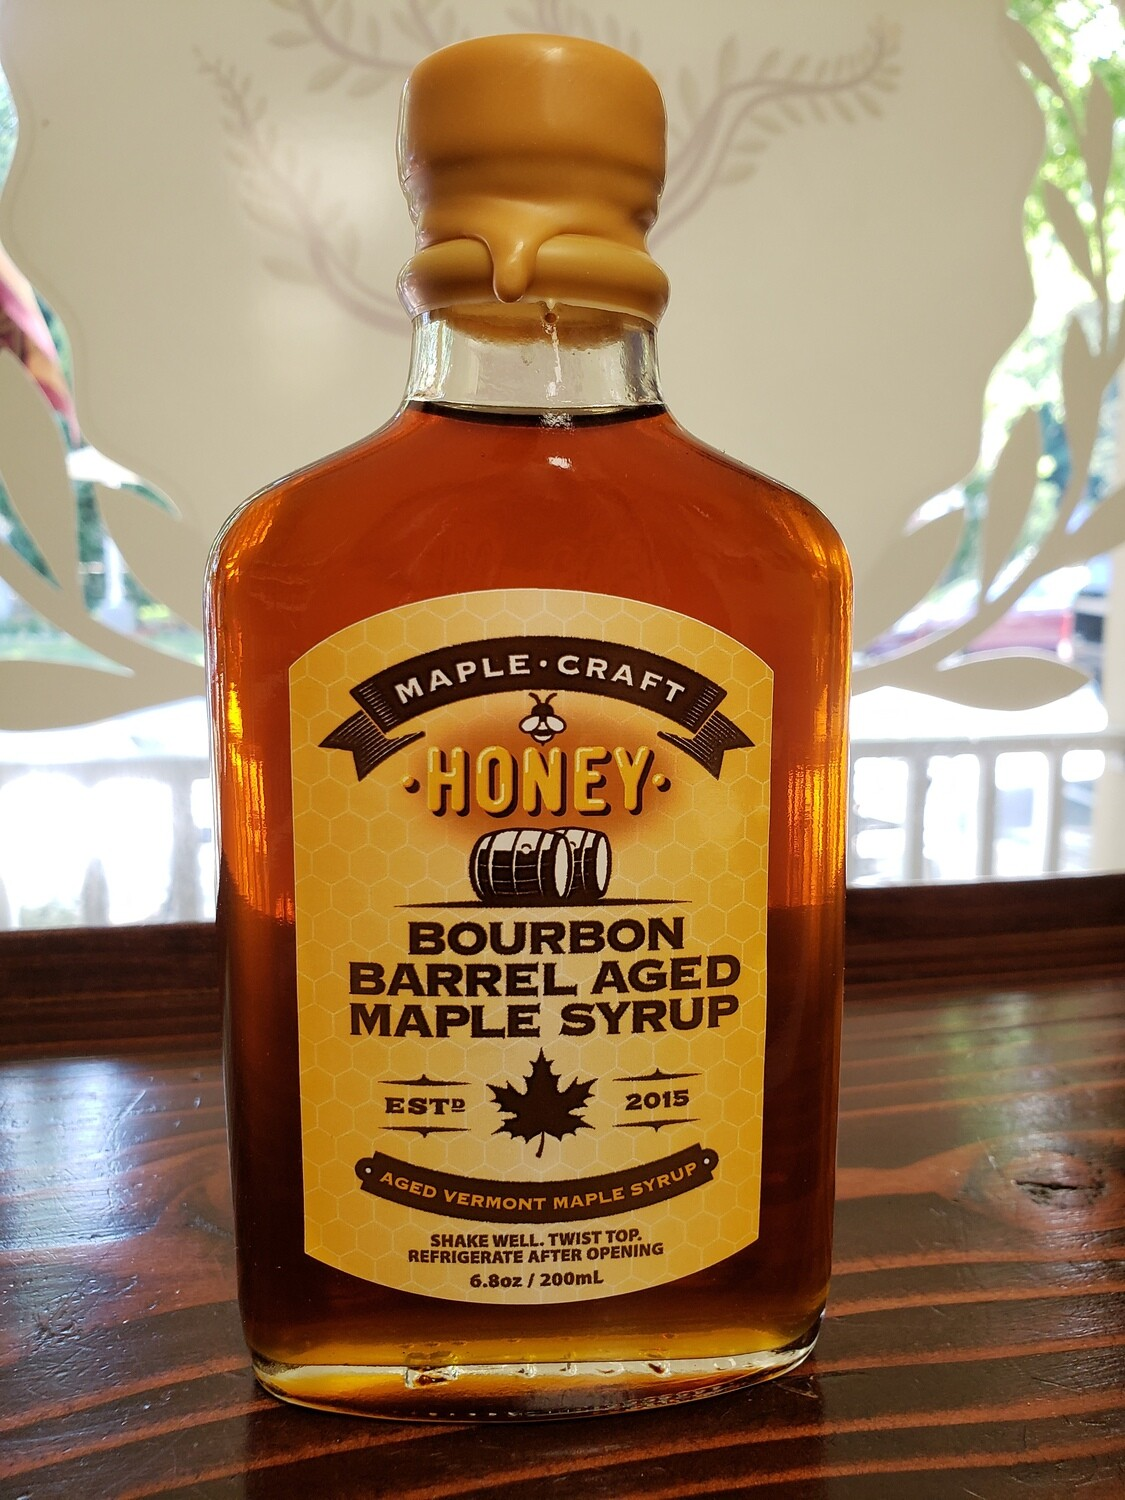 Maple Syrup - Honey Infused Bourbon Barrel